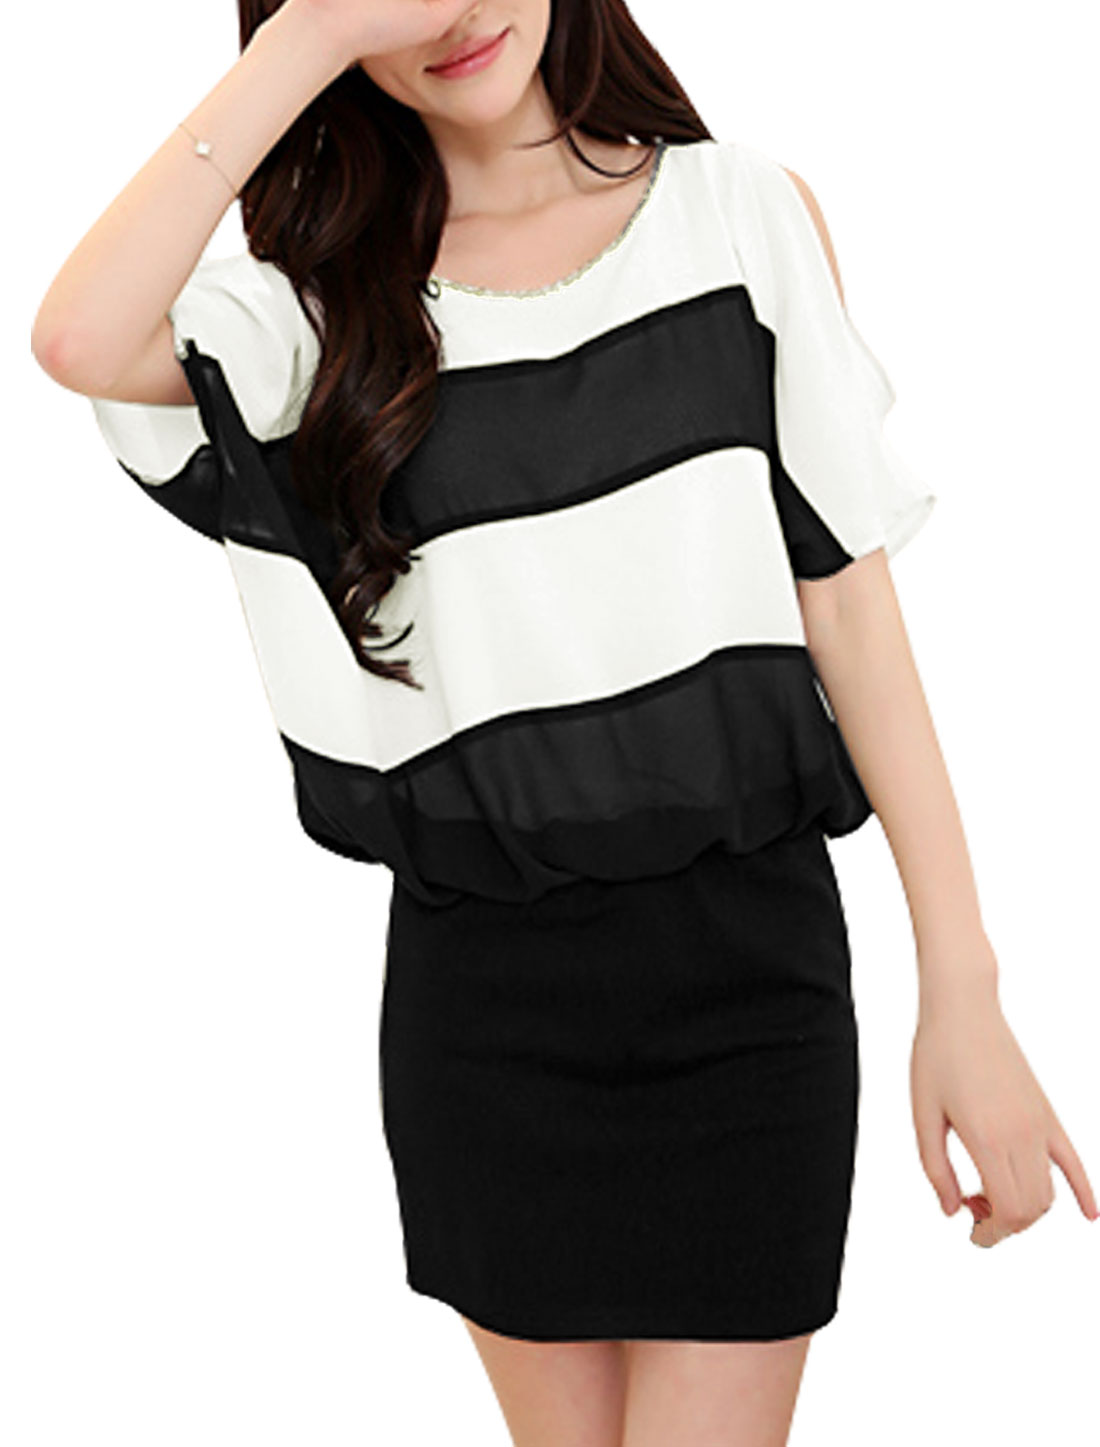 Lady 1/2 Batwing Sleeve Cut Out Shoulder Blouson Dress Black White S